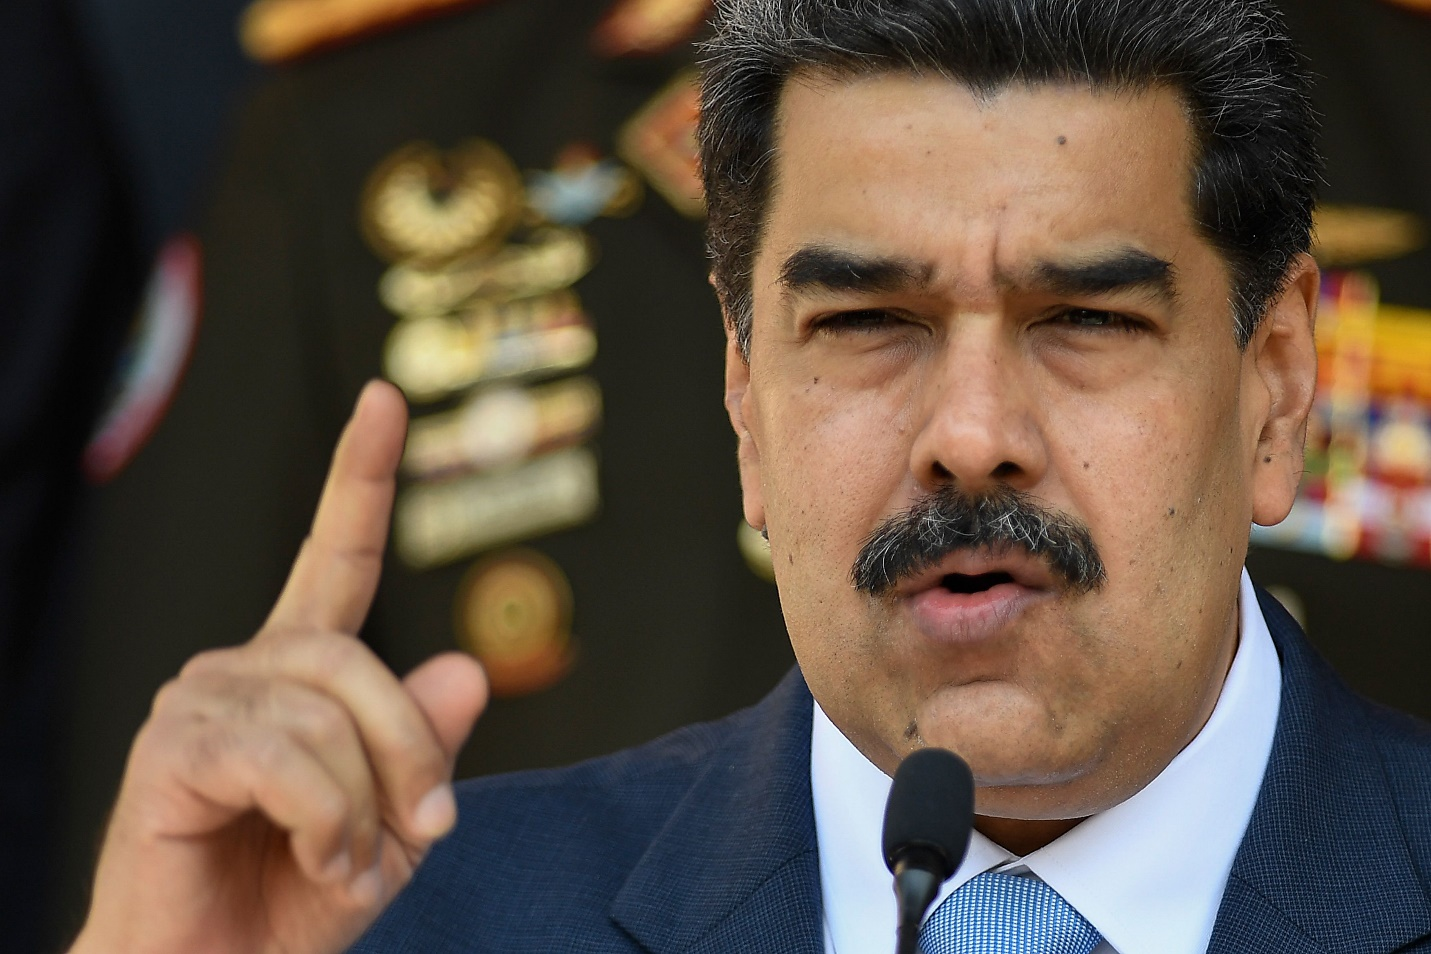 Description: Nicolás Maduro threatens 'racist cowboy' Trump in face of charges